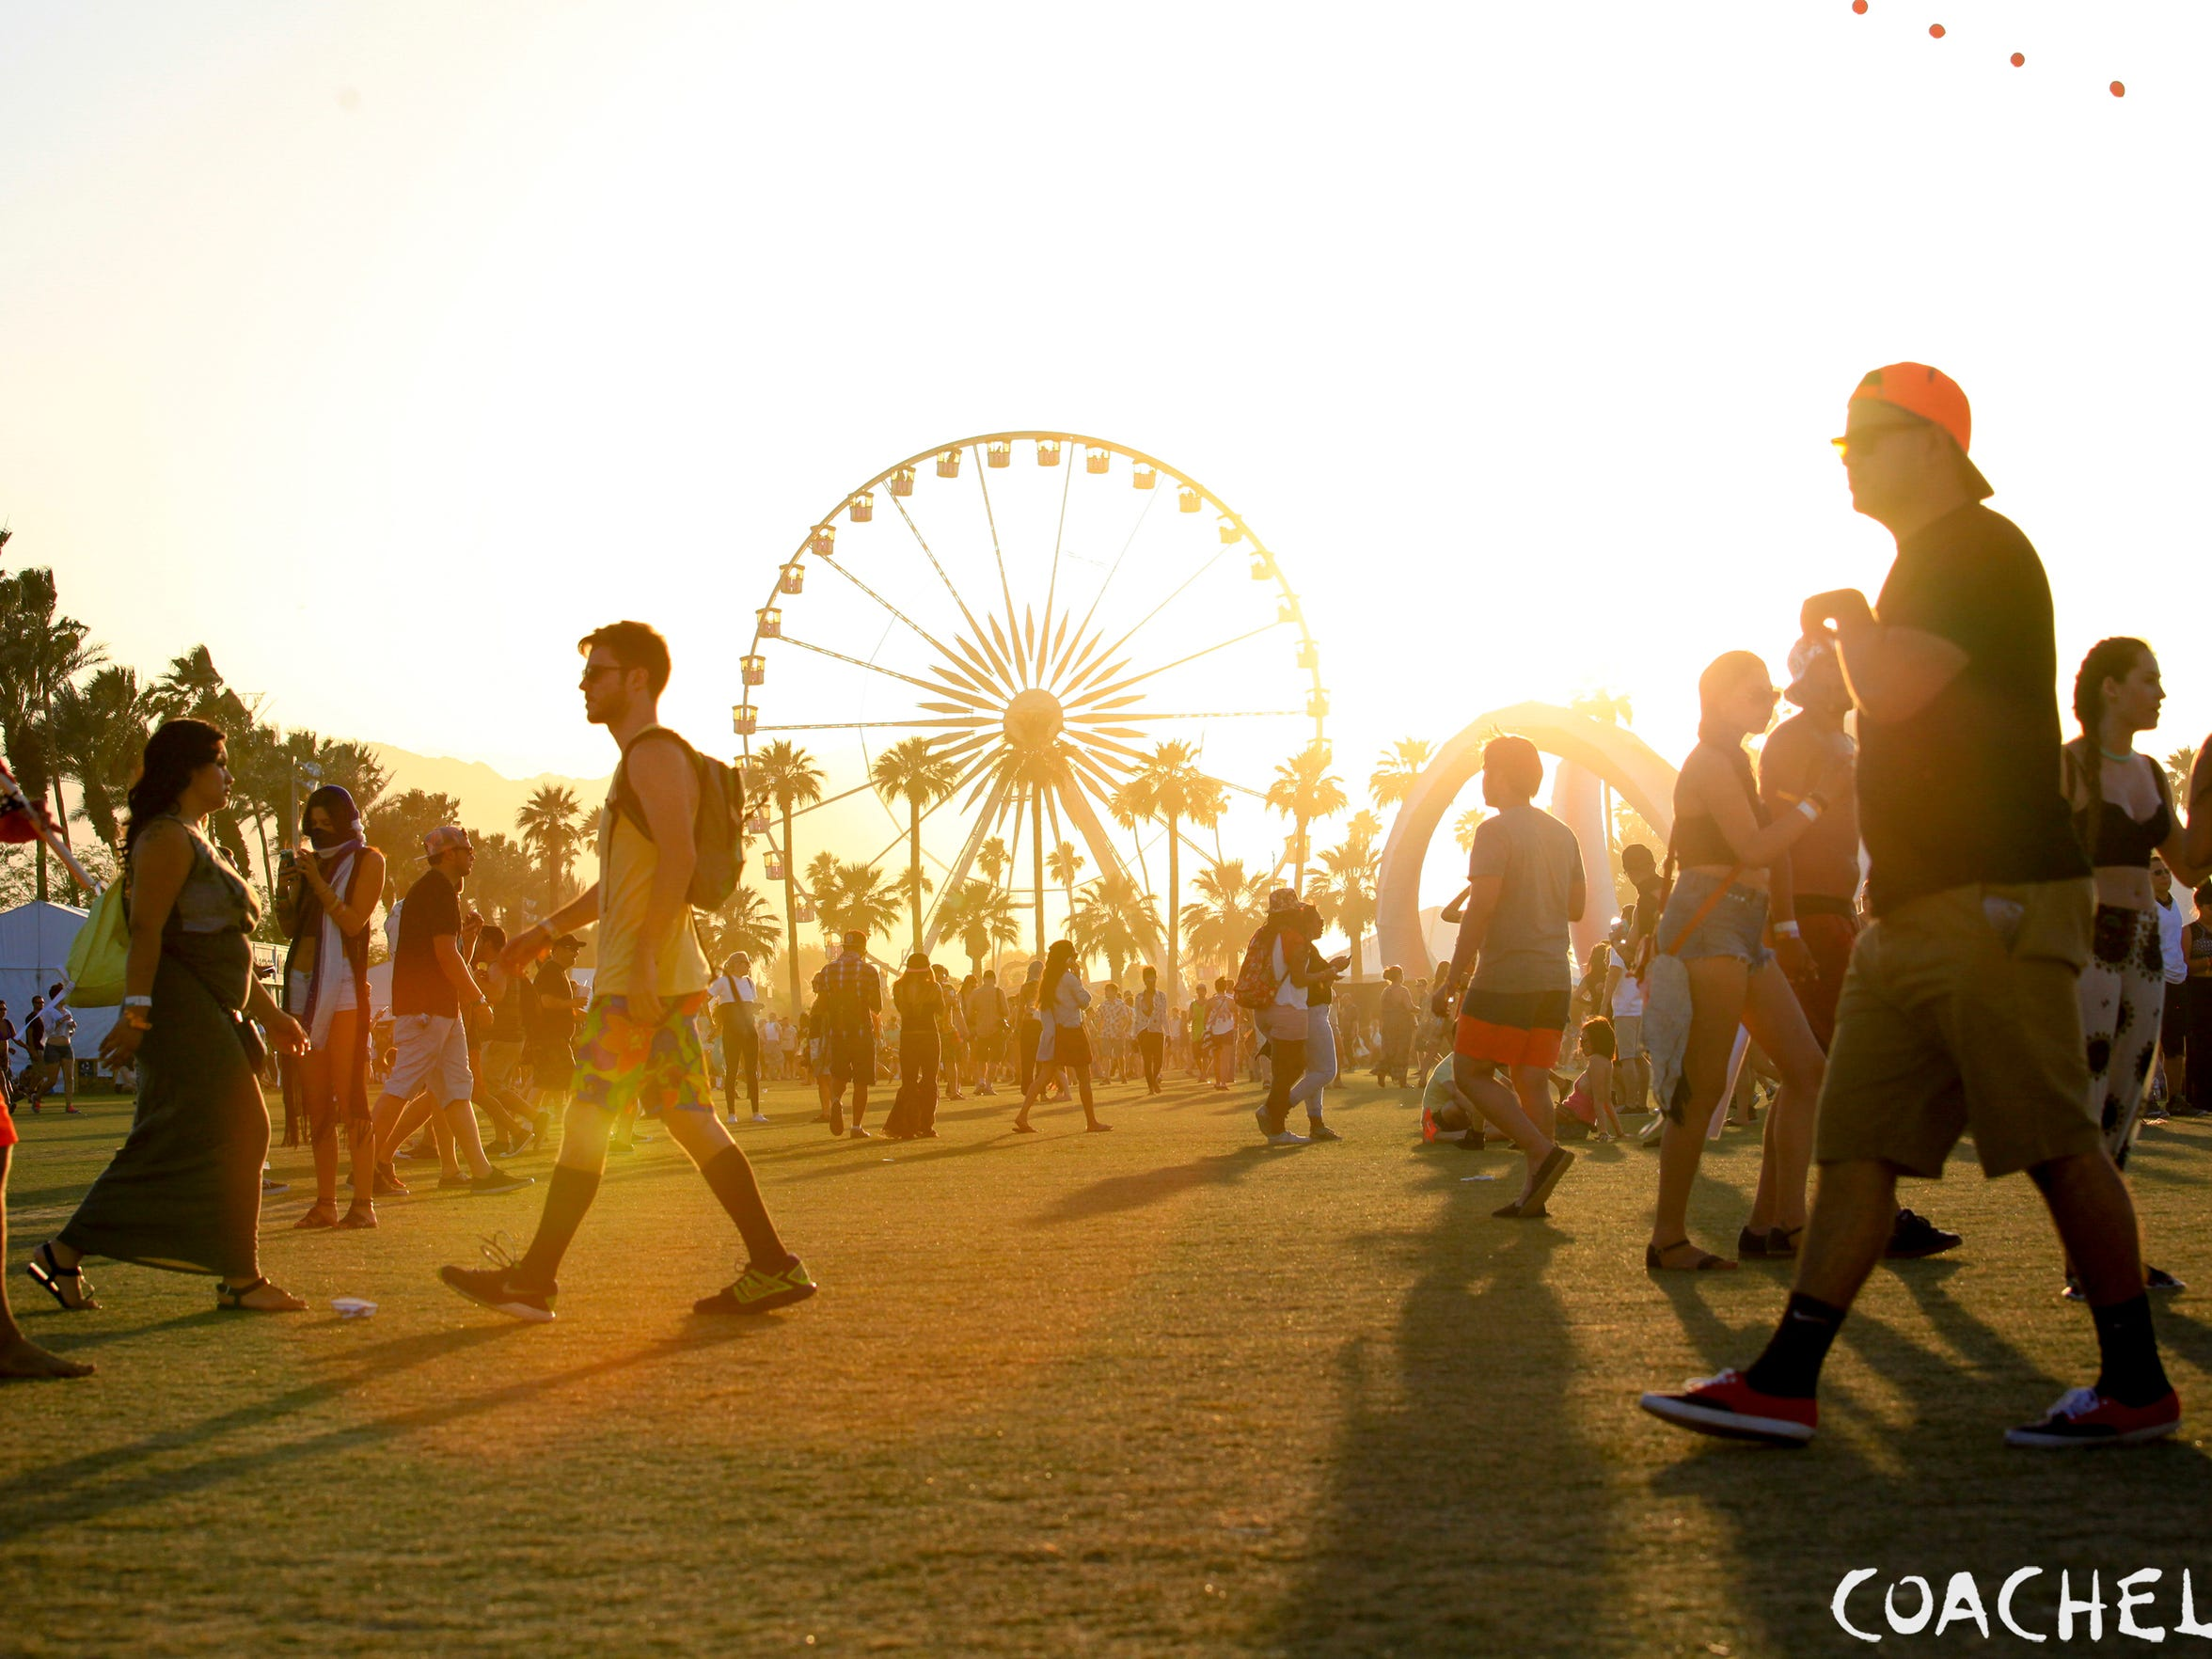 Crowds walk the grounds at Coachella.